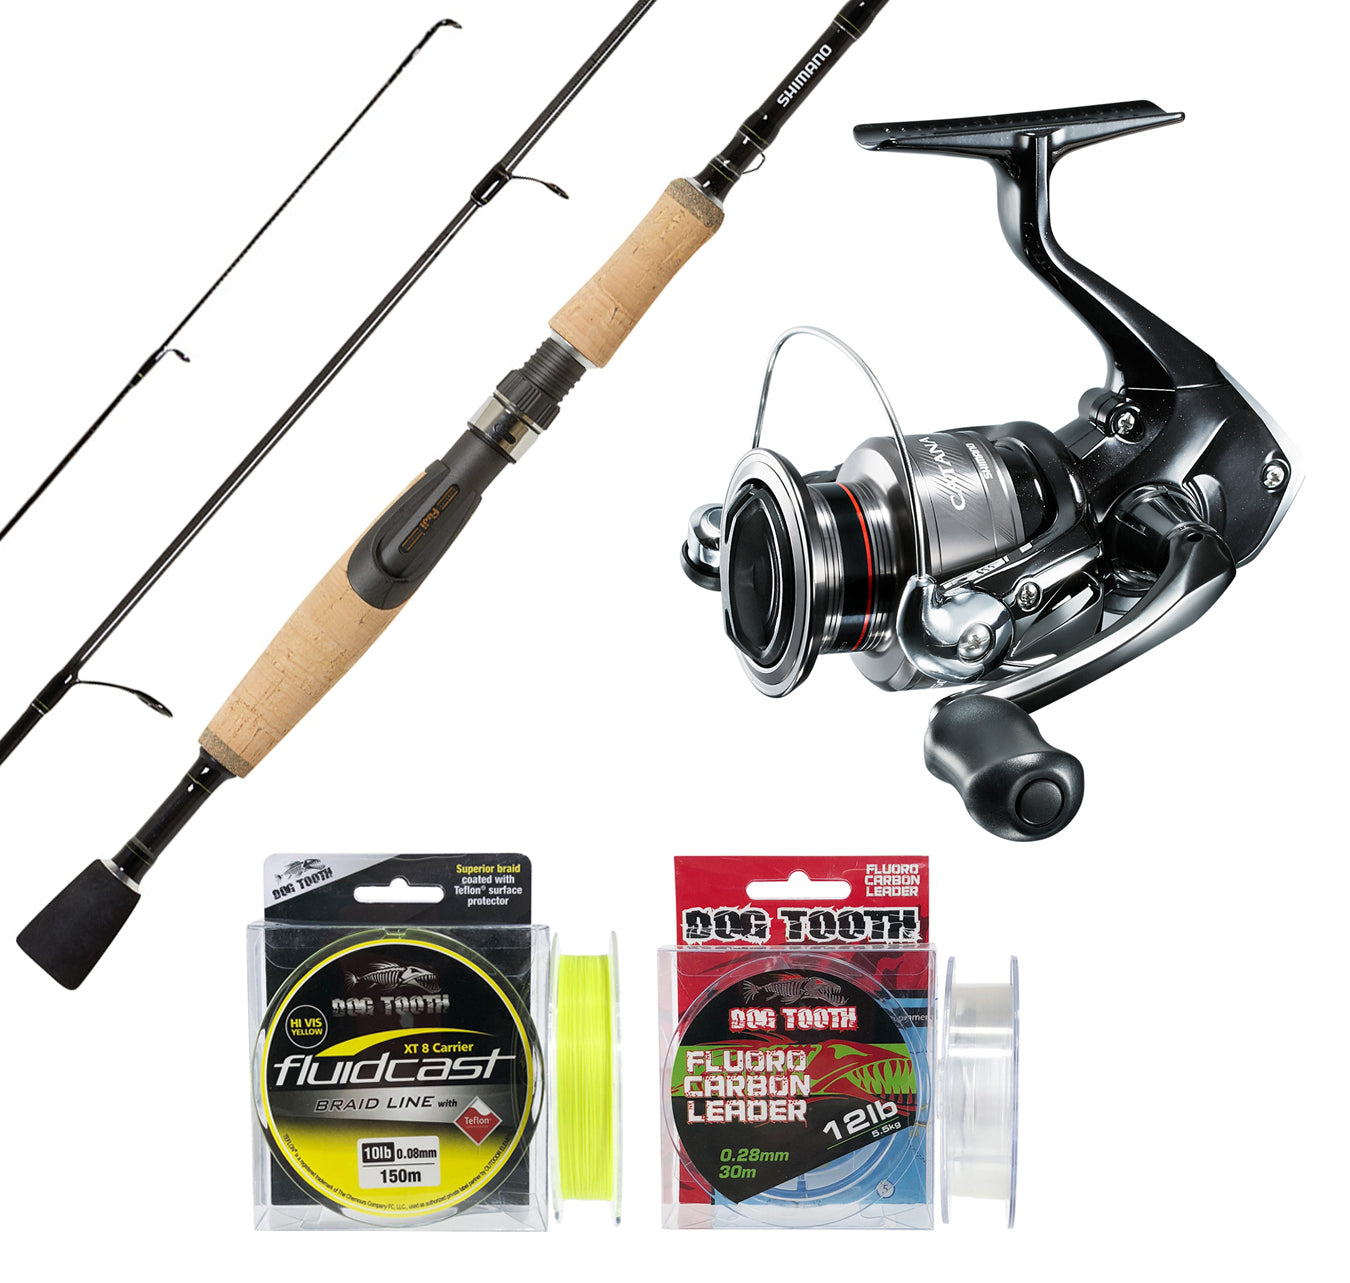 Shimano Sentire 732 2-4kg + Catana FD 2500 + Line Package